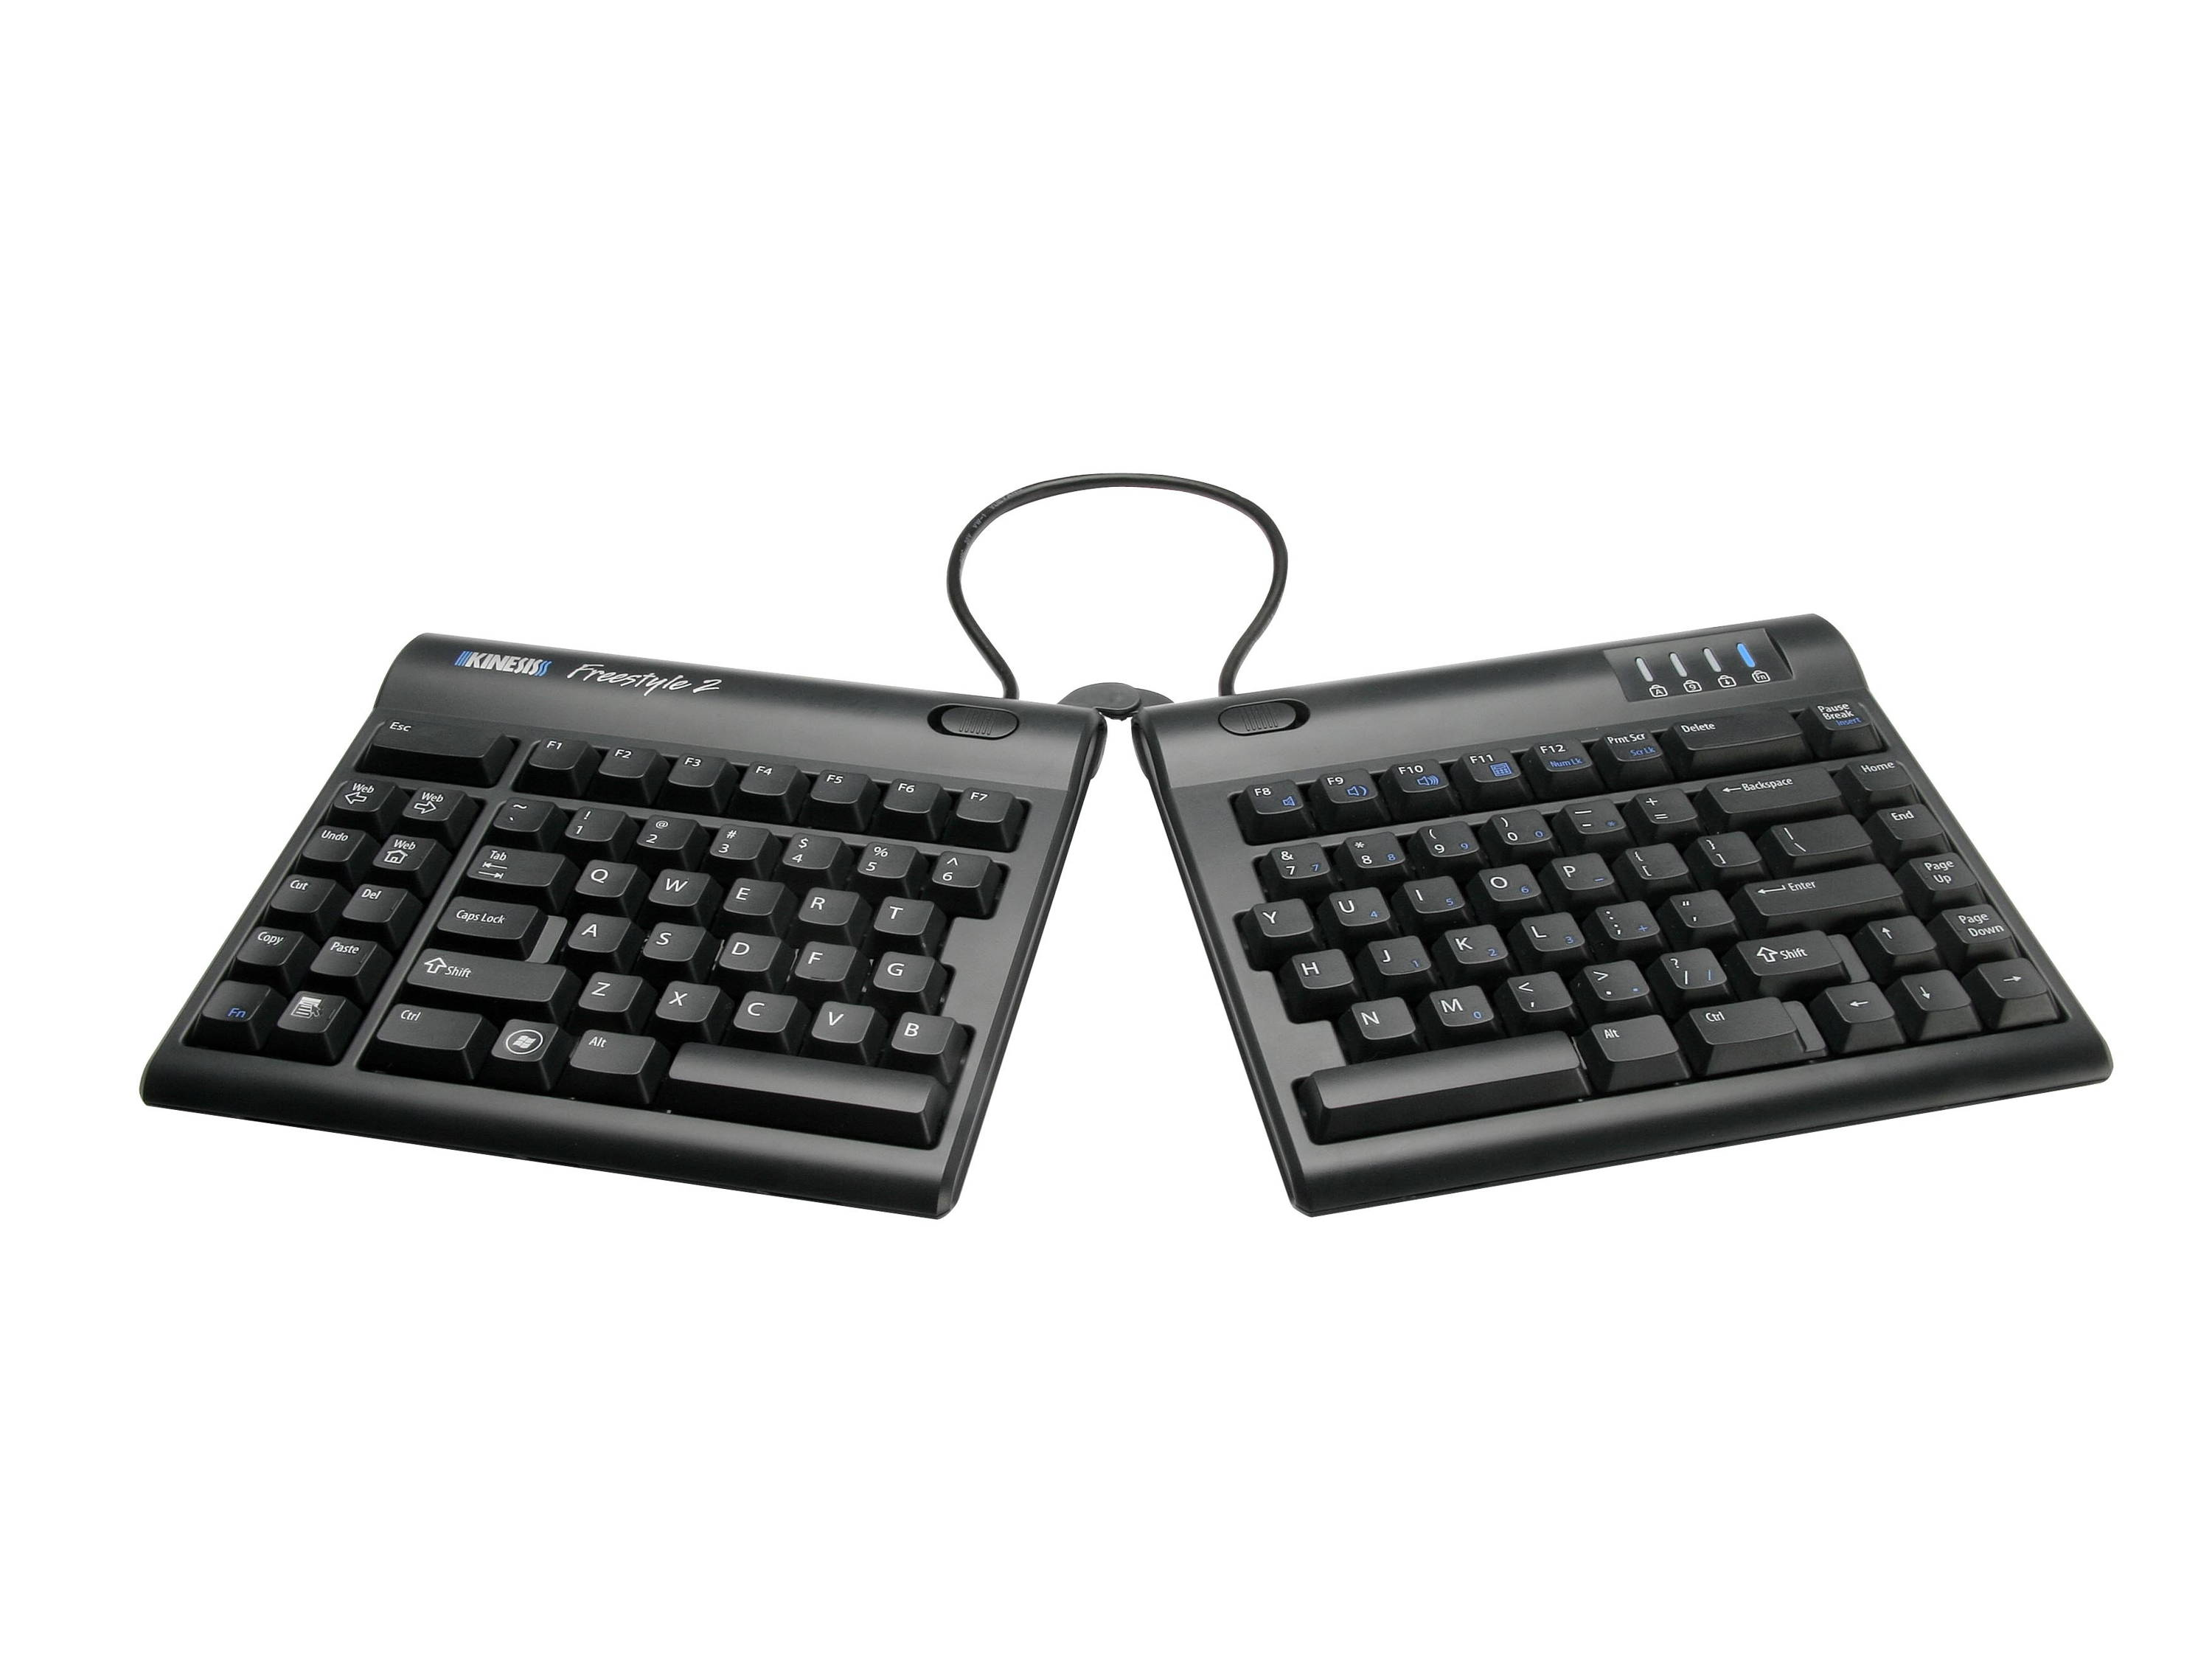 Thin ergonomic keyboard